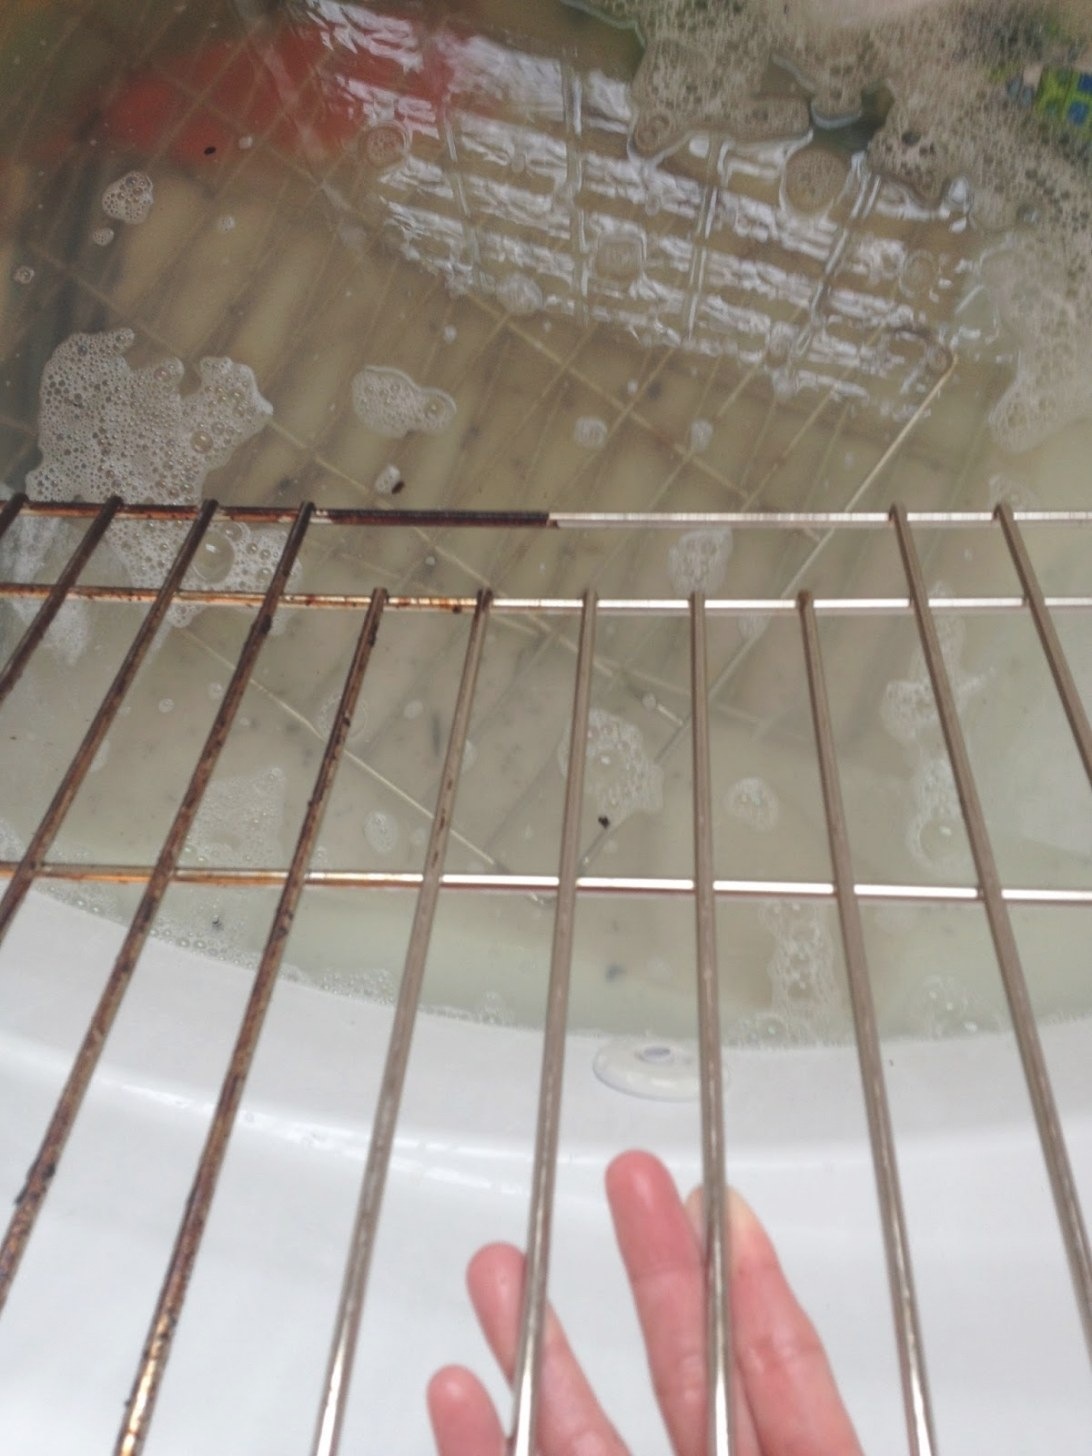 Life Love Larson: How To Clean Oven Racks (In The Bathtub!) throughout How To Clean Oven Racks